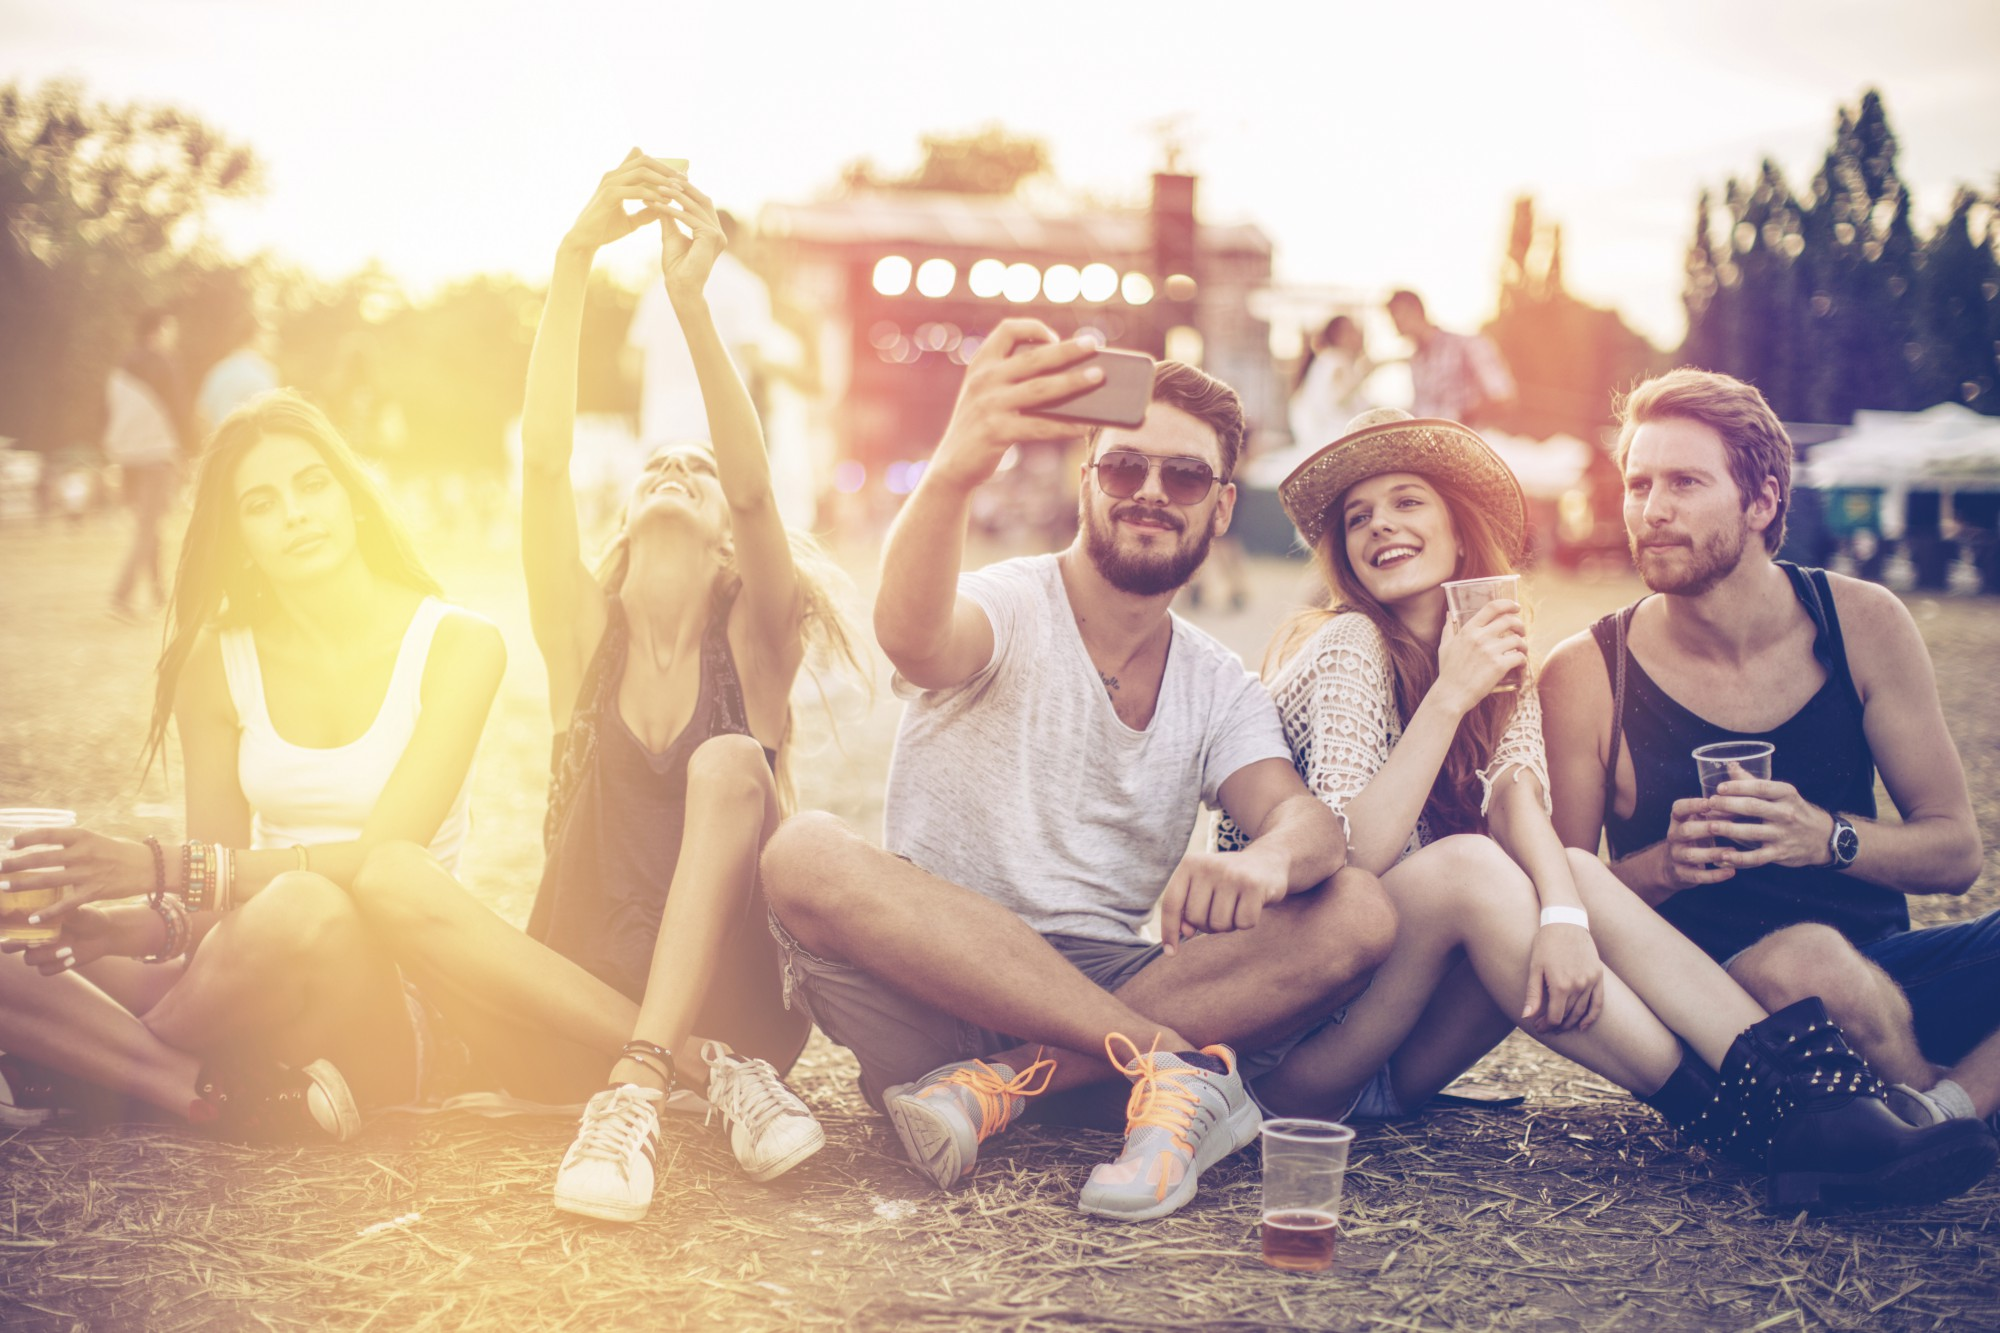 Festival survival tips